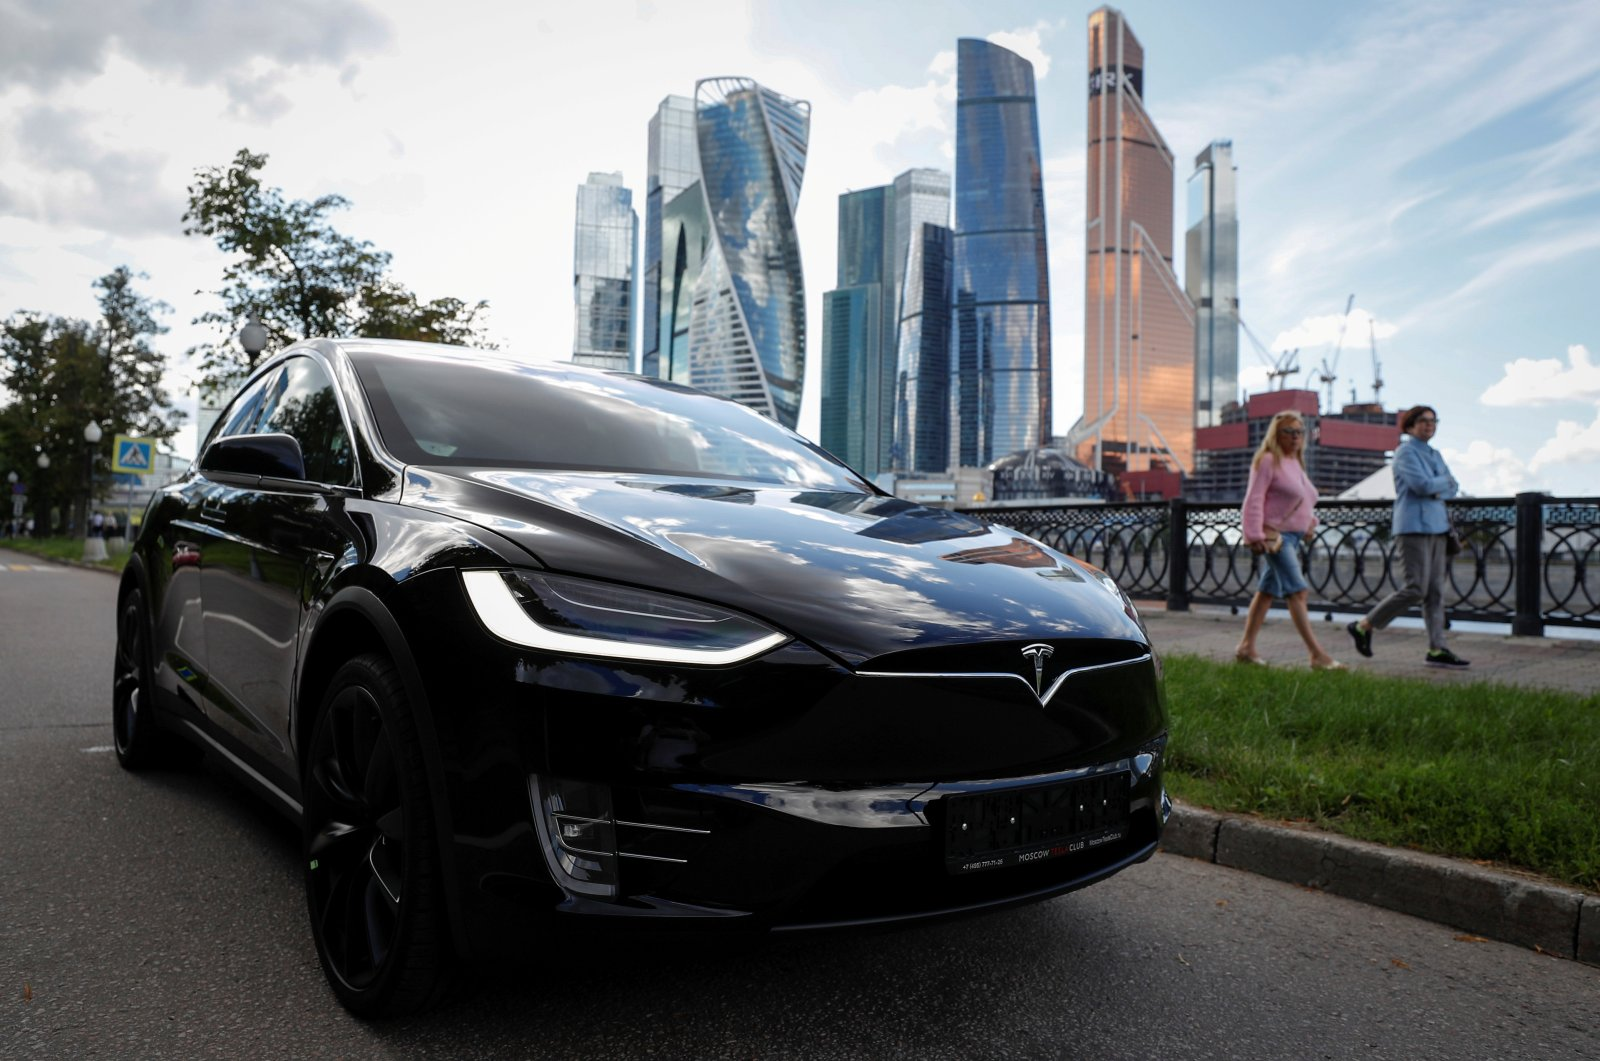 A Tesla Model X electric vehicle is shown in this picture illustration taken in Moscow, Russia, July 23, 2020. (Reuters Photo)